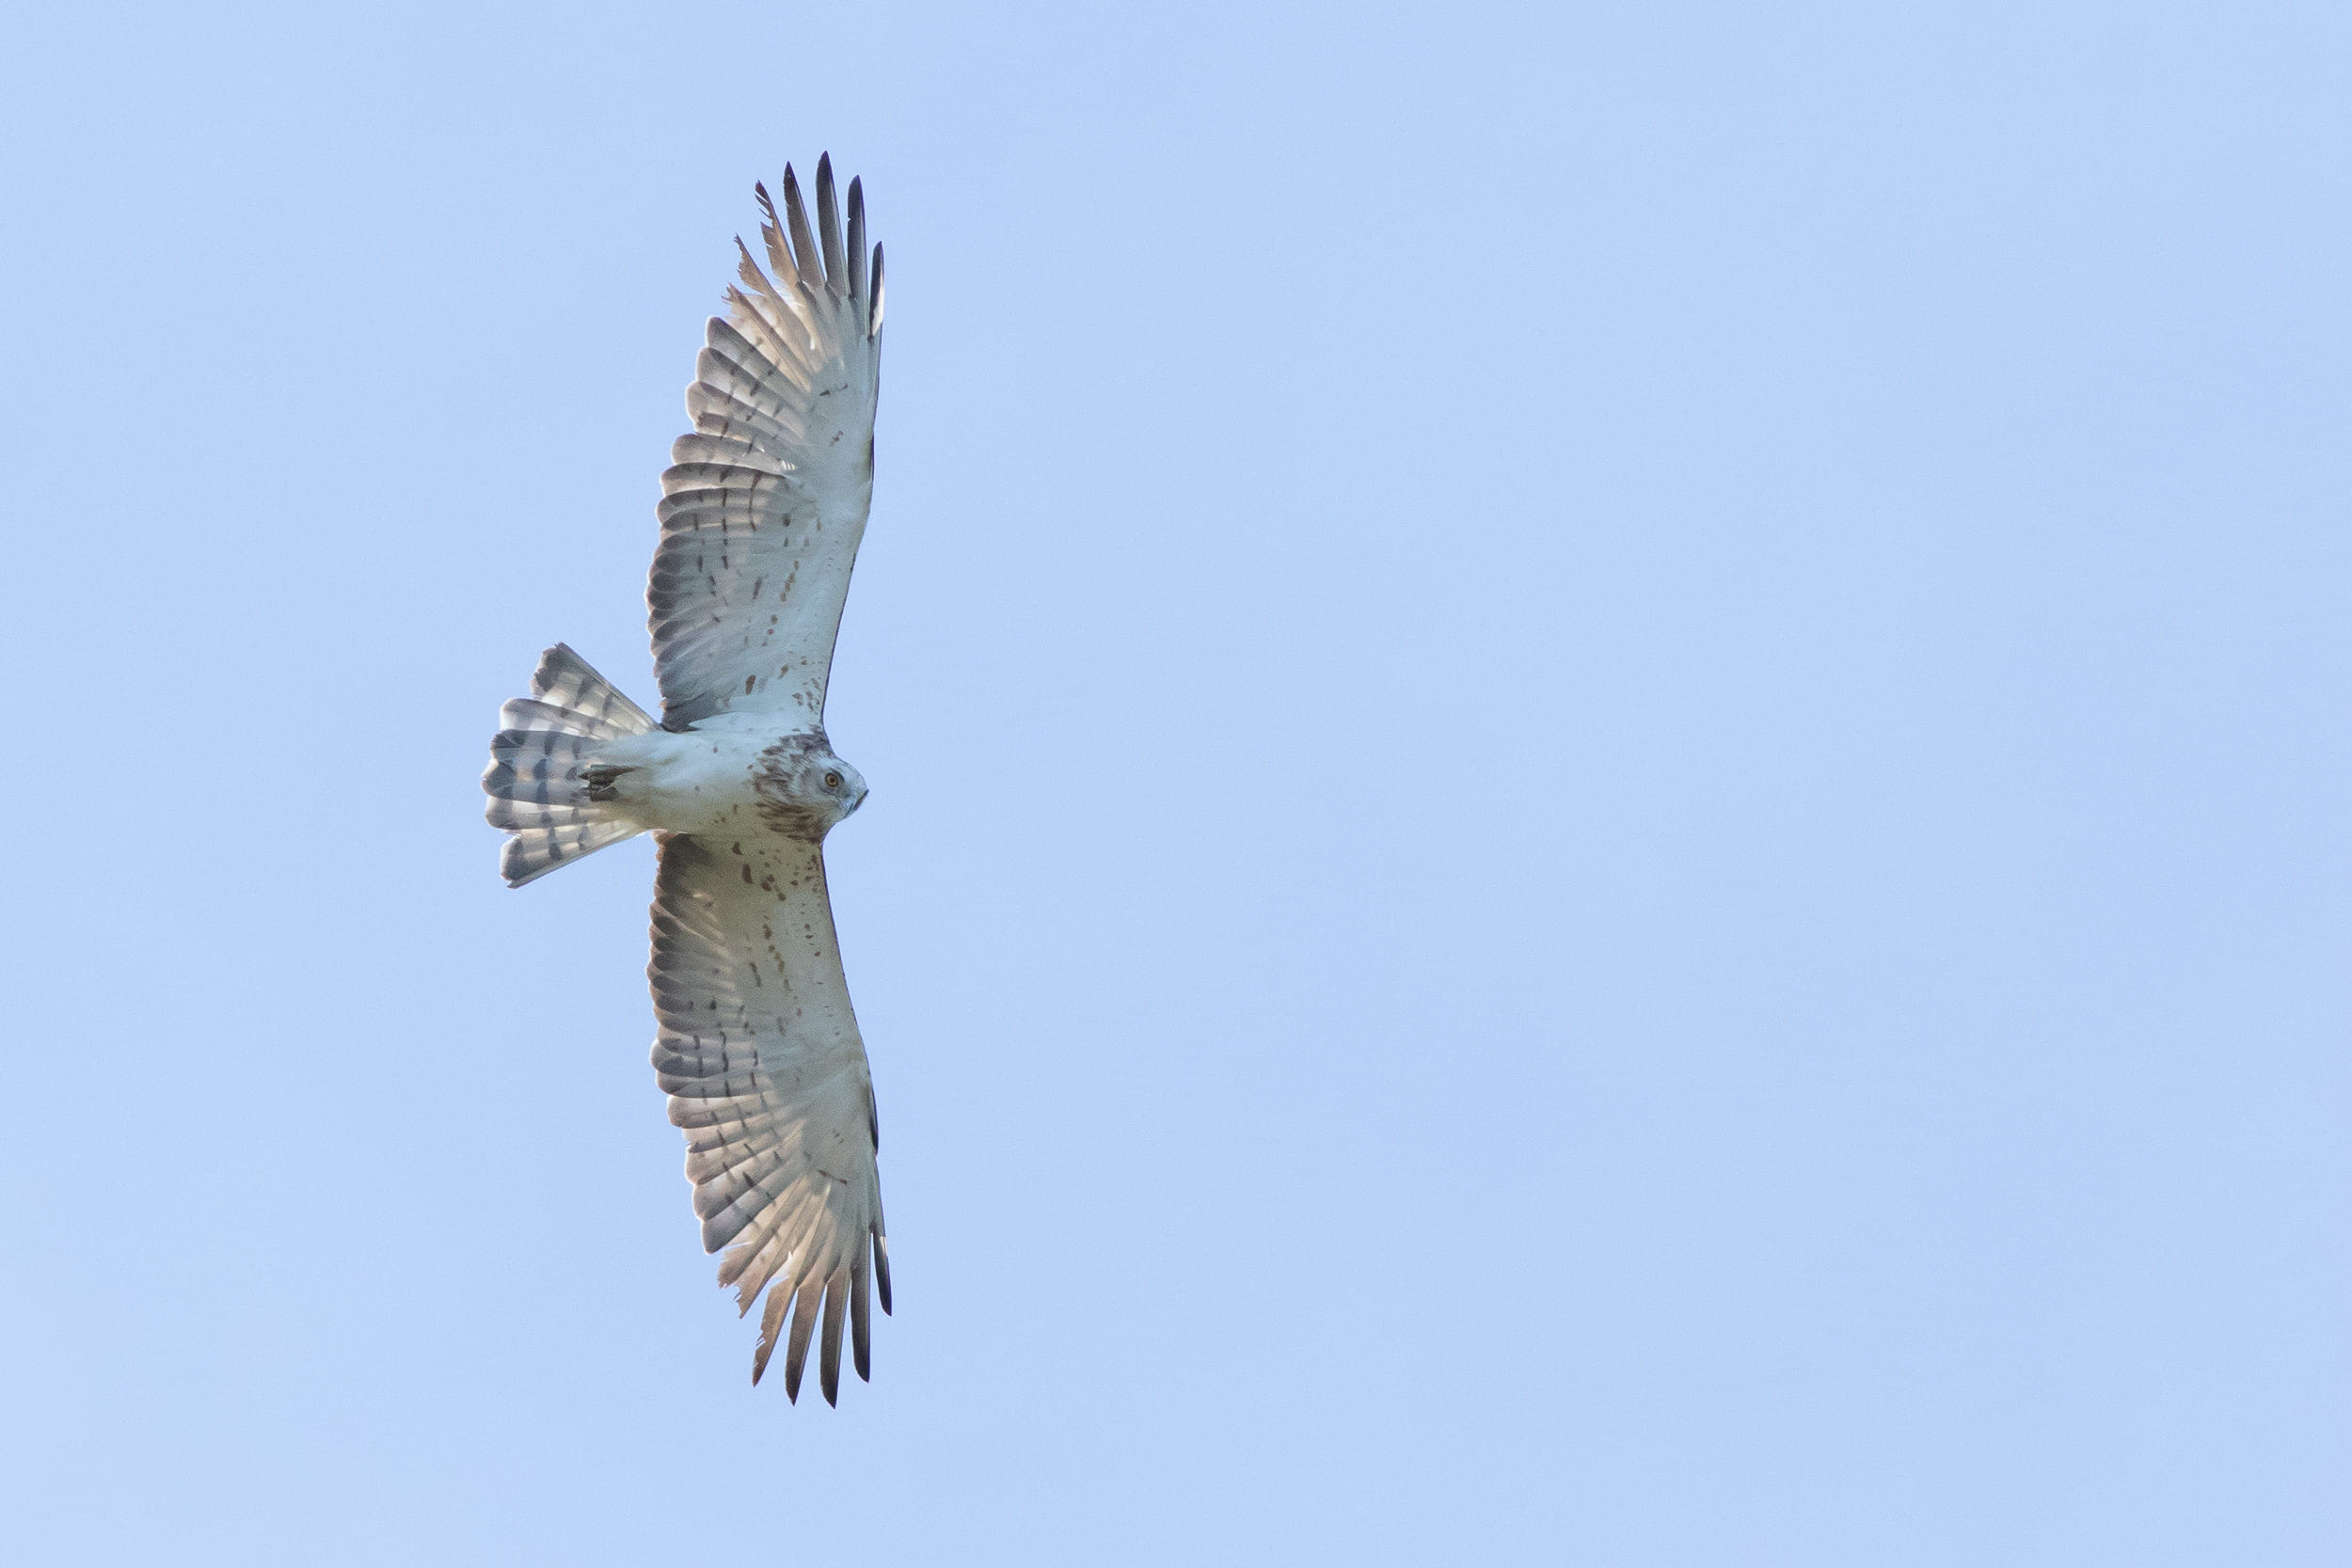 Short-toed Eagle. Photo by Diego Jansen.